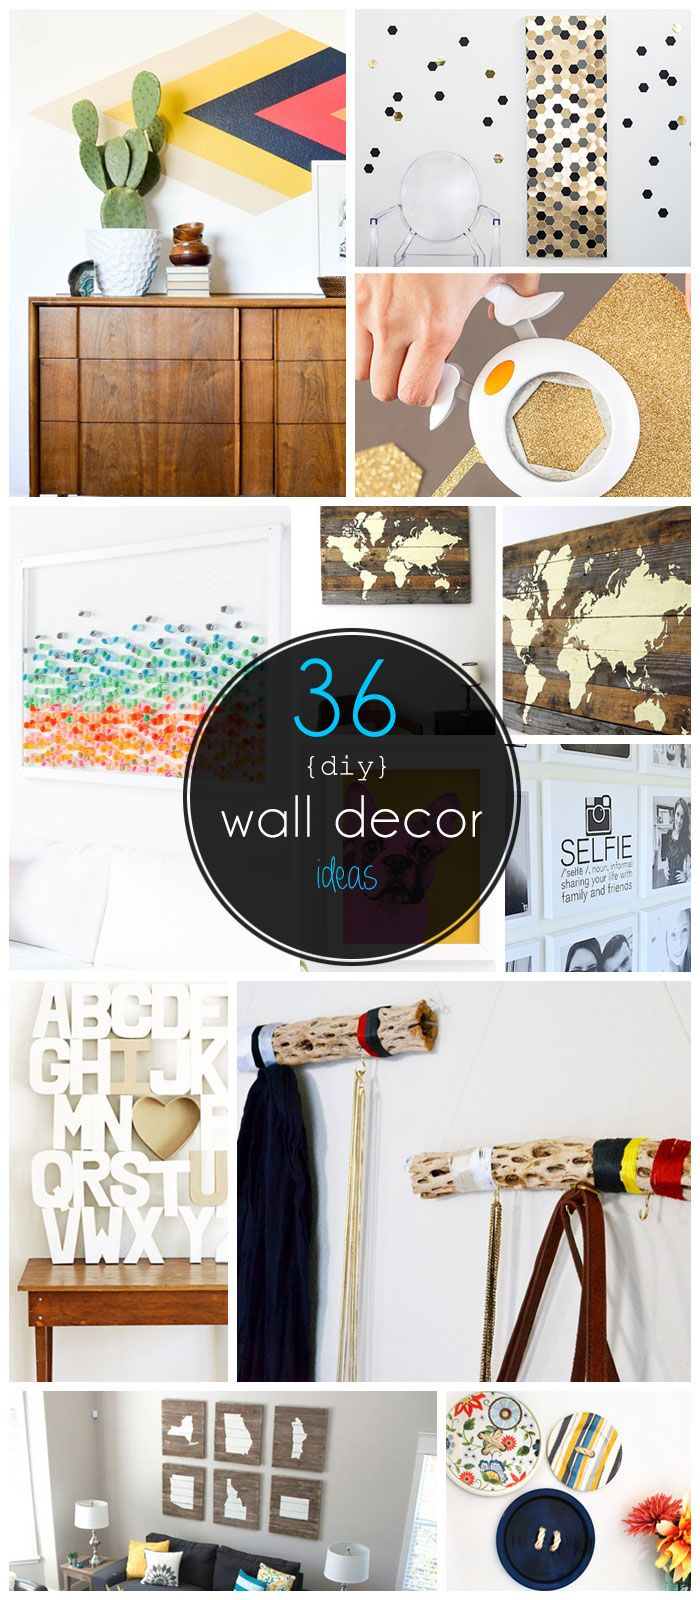 35 creative diy wall art ideas for your home creative ideas for bedrooms and calendar. Black Bedroom Furniture Sets. Home Design Ideas